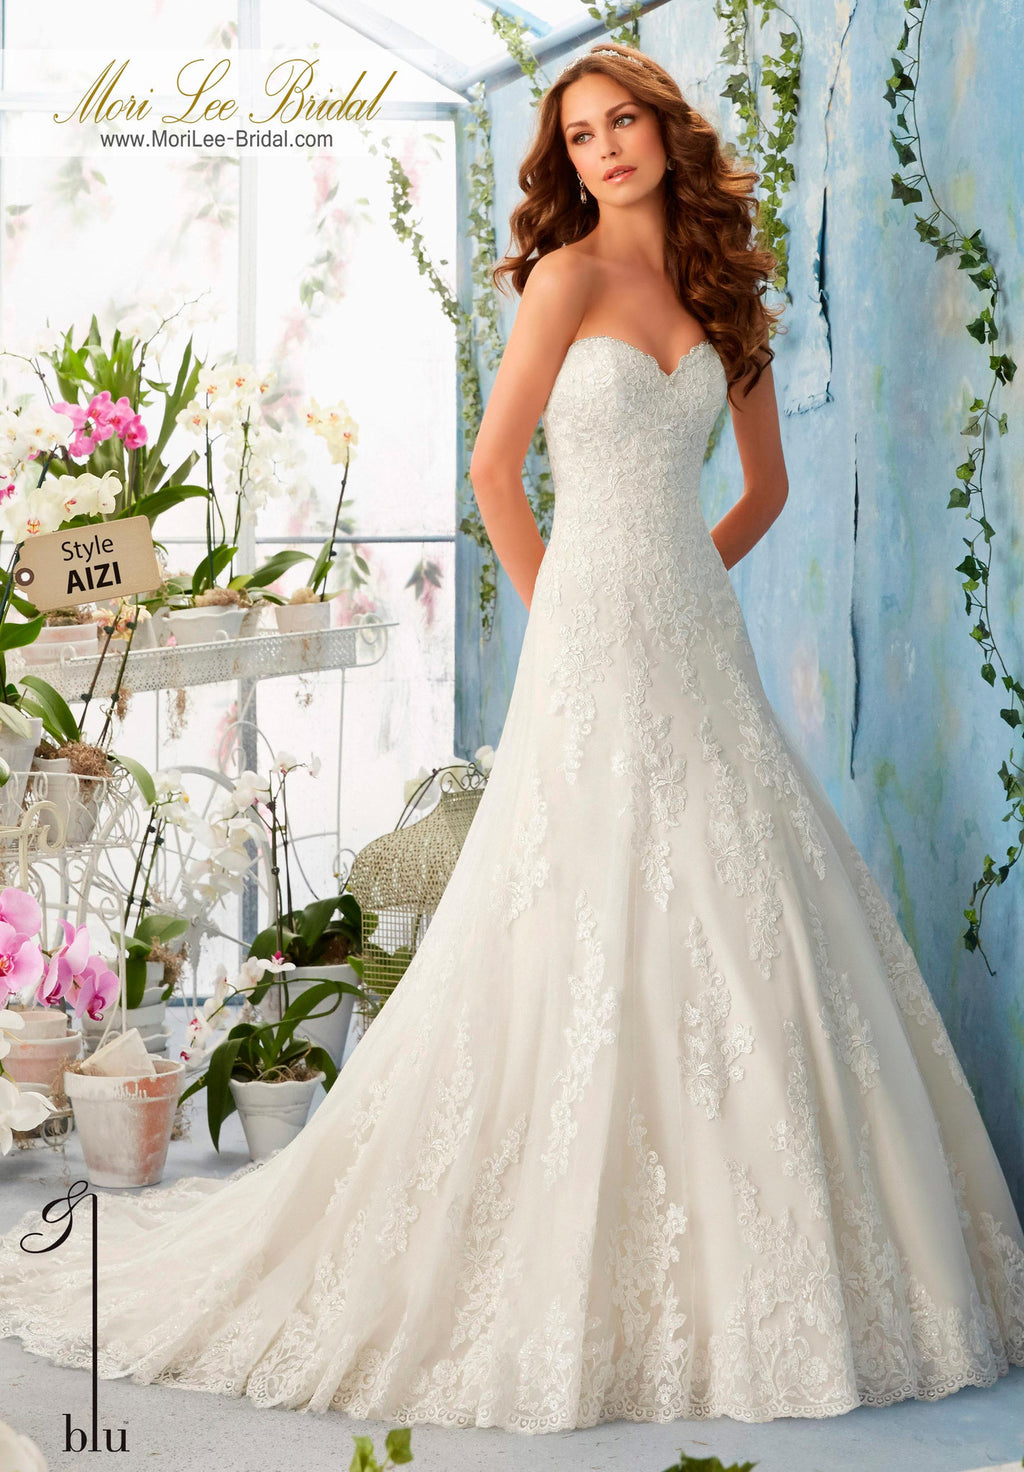 AIZI - Mori Lee Bridal